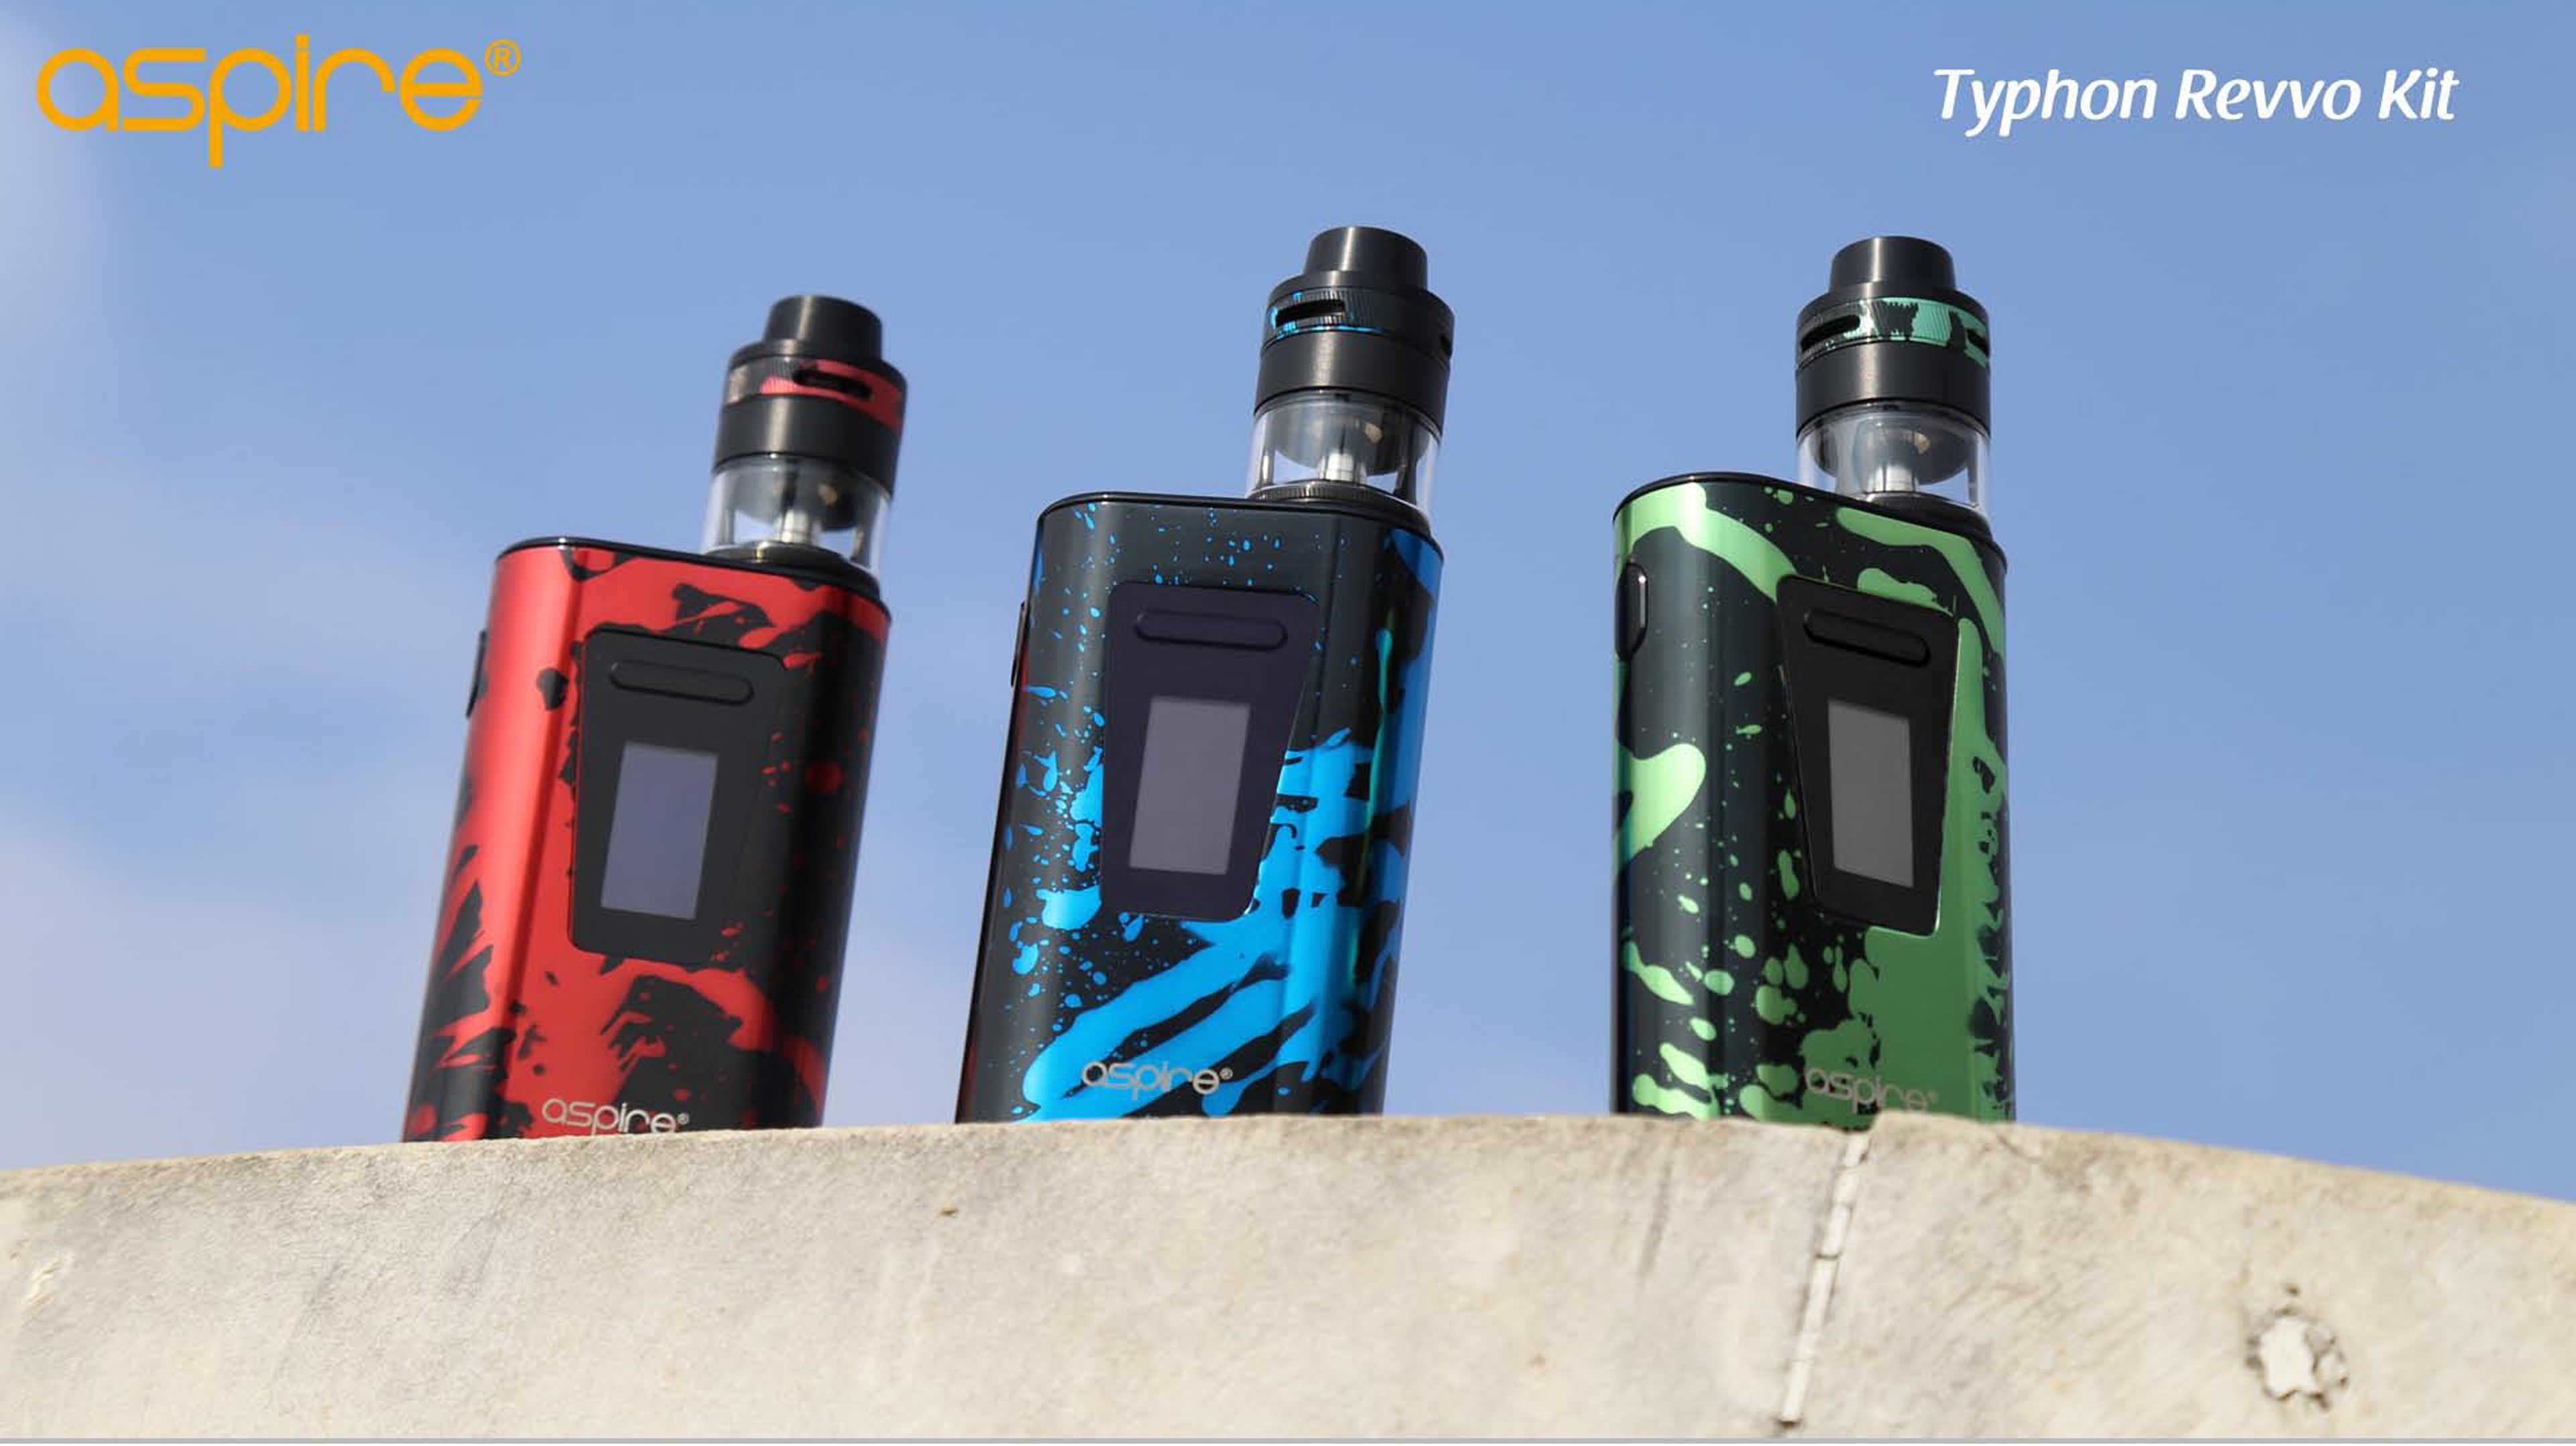 Aspire Typhone Revvo Kit Components View